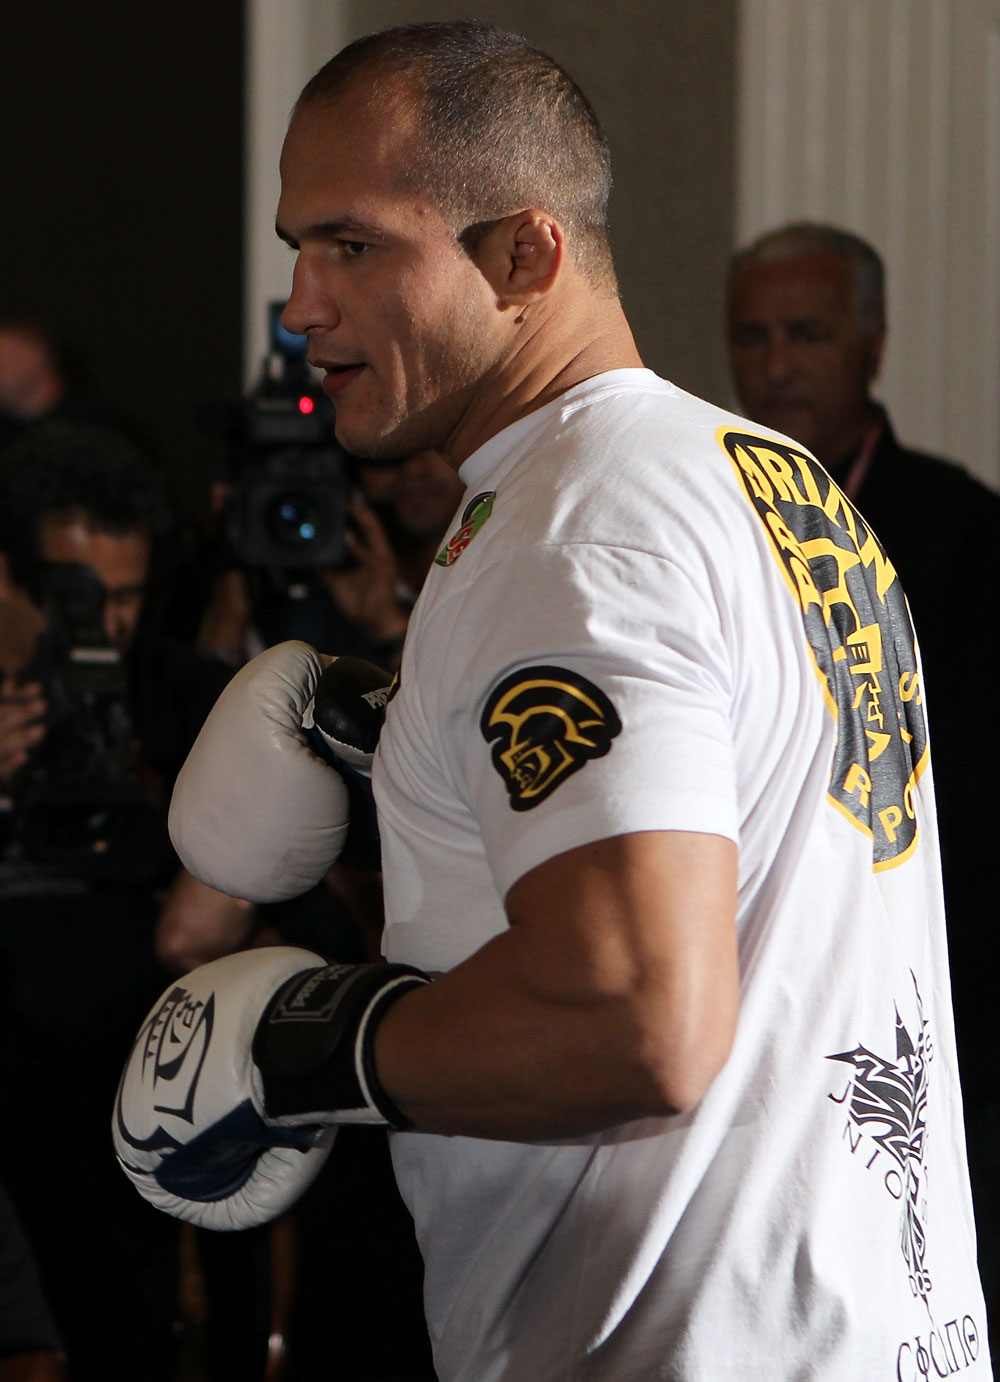 UFC heavyweight champion Junior dos Santos